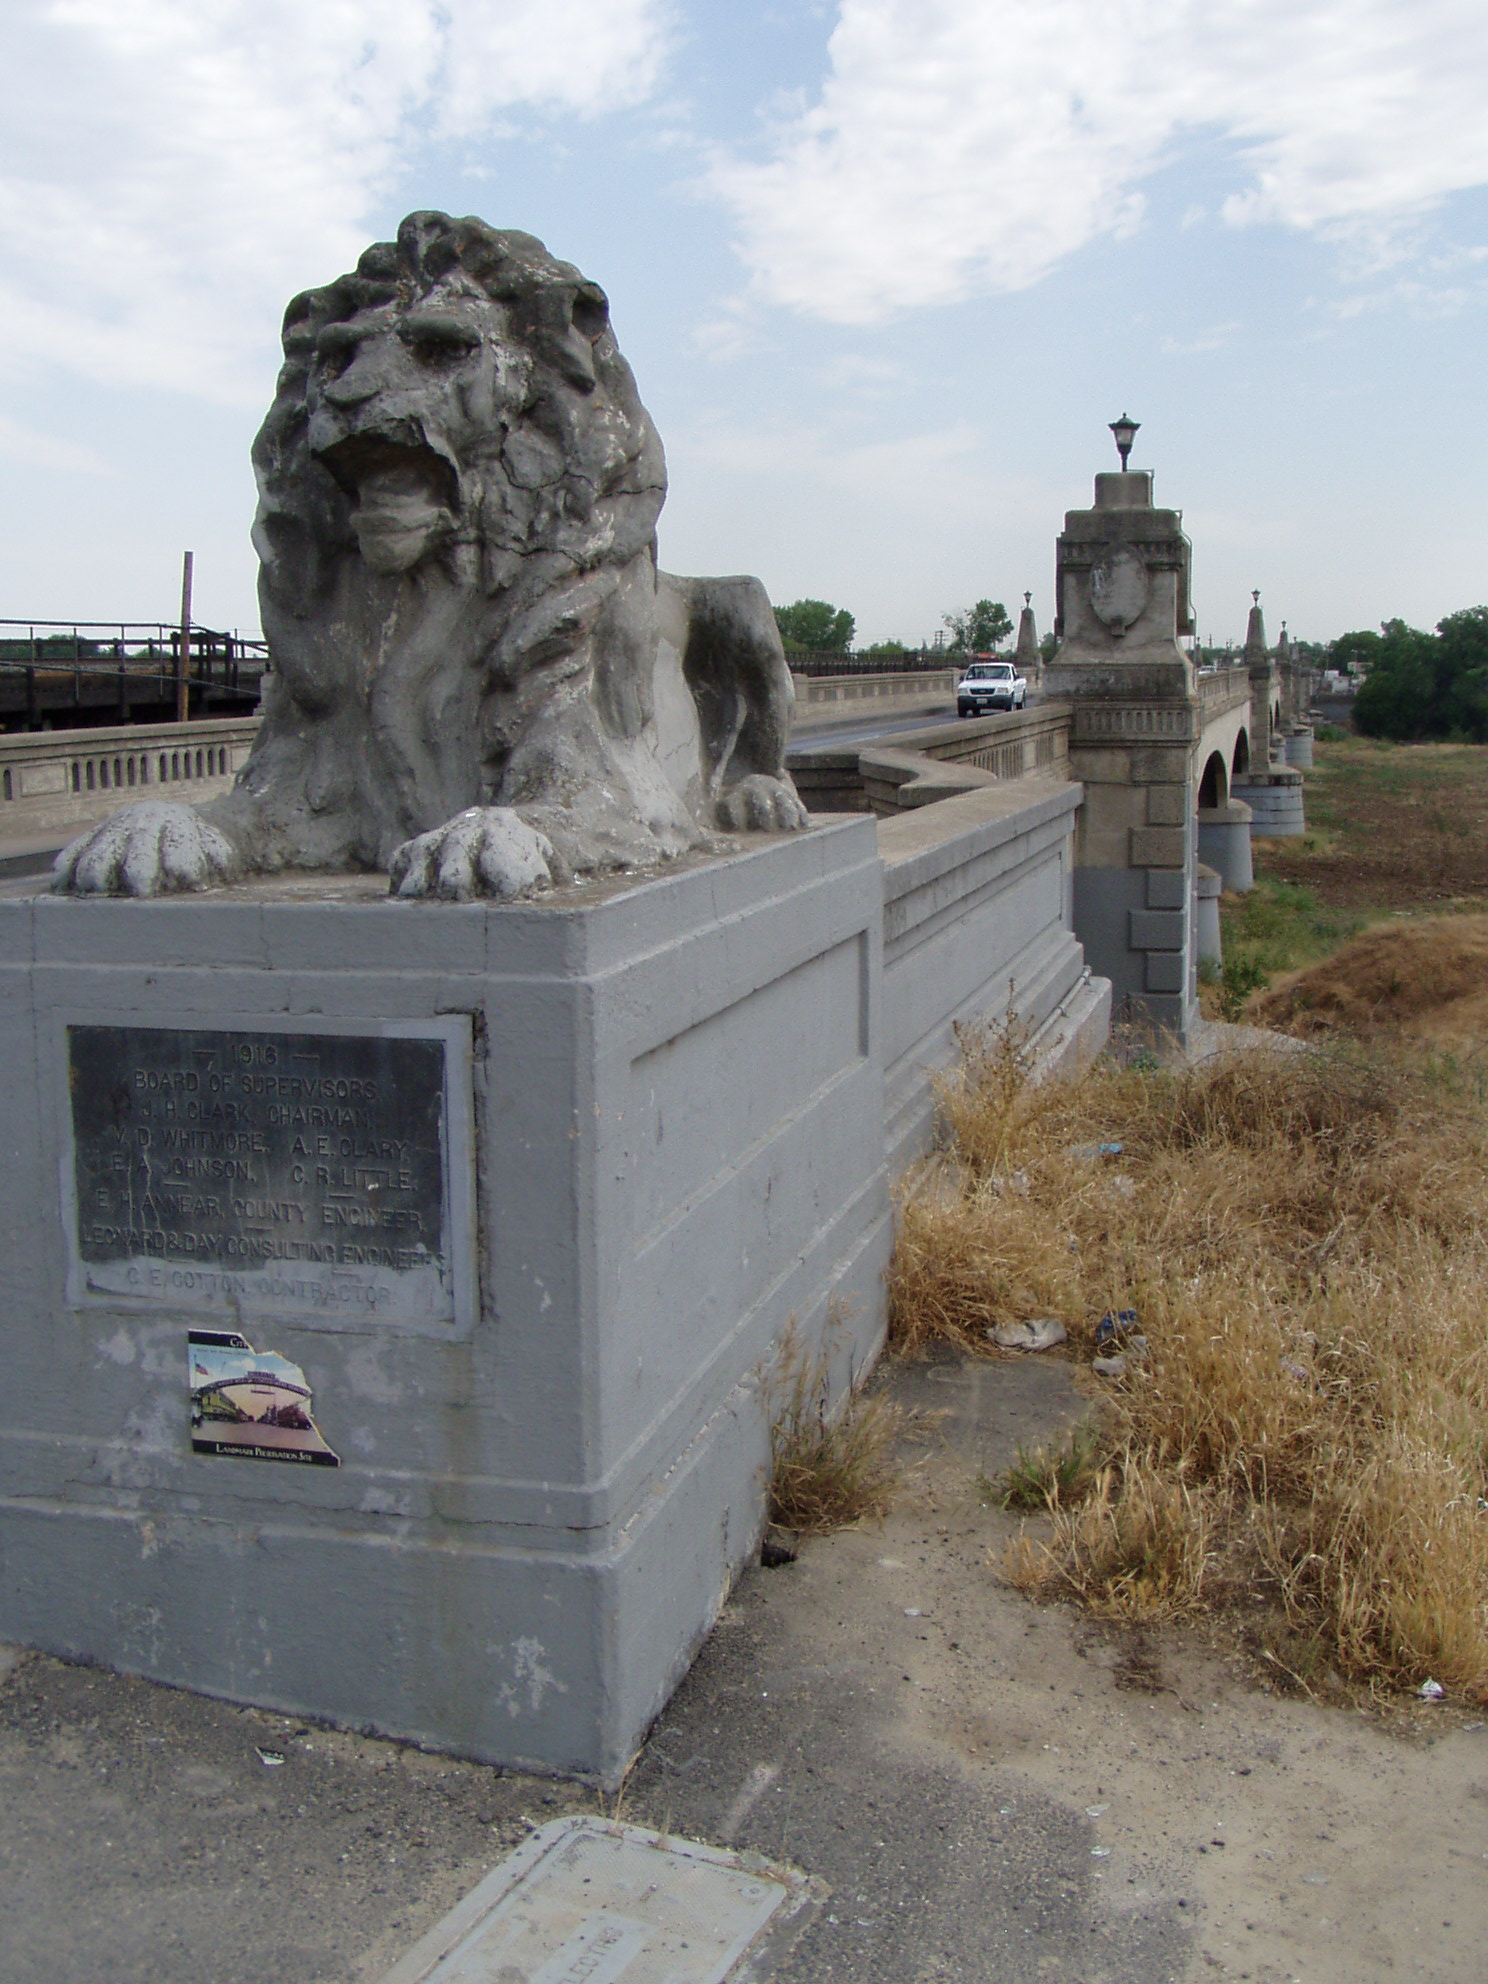 7th Street Bridge - Lion Bridge in Modesto 38c0023c